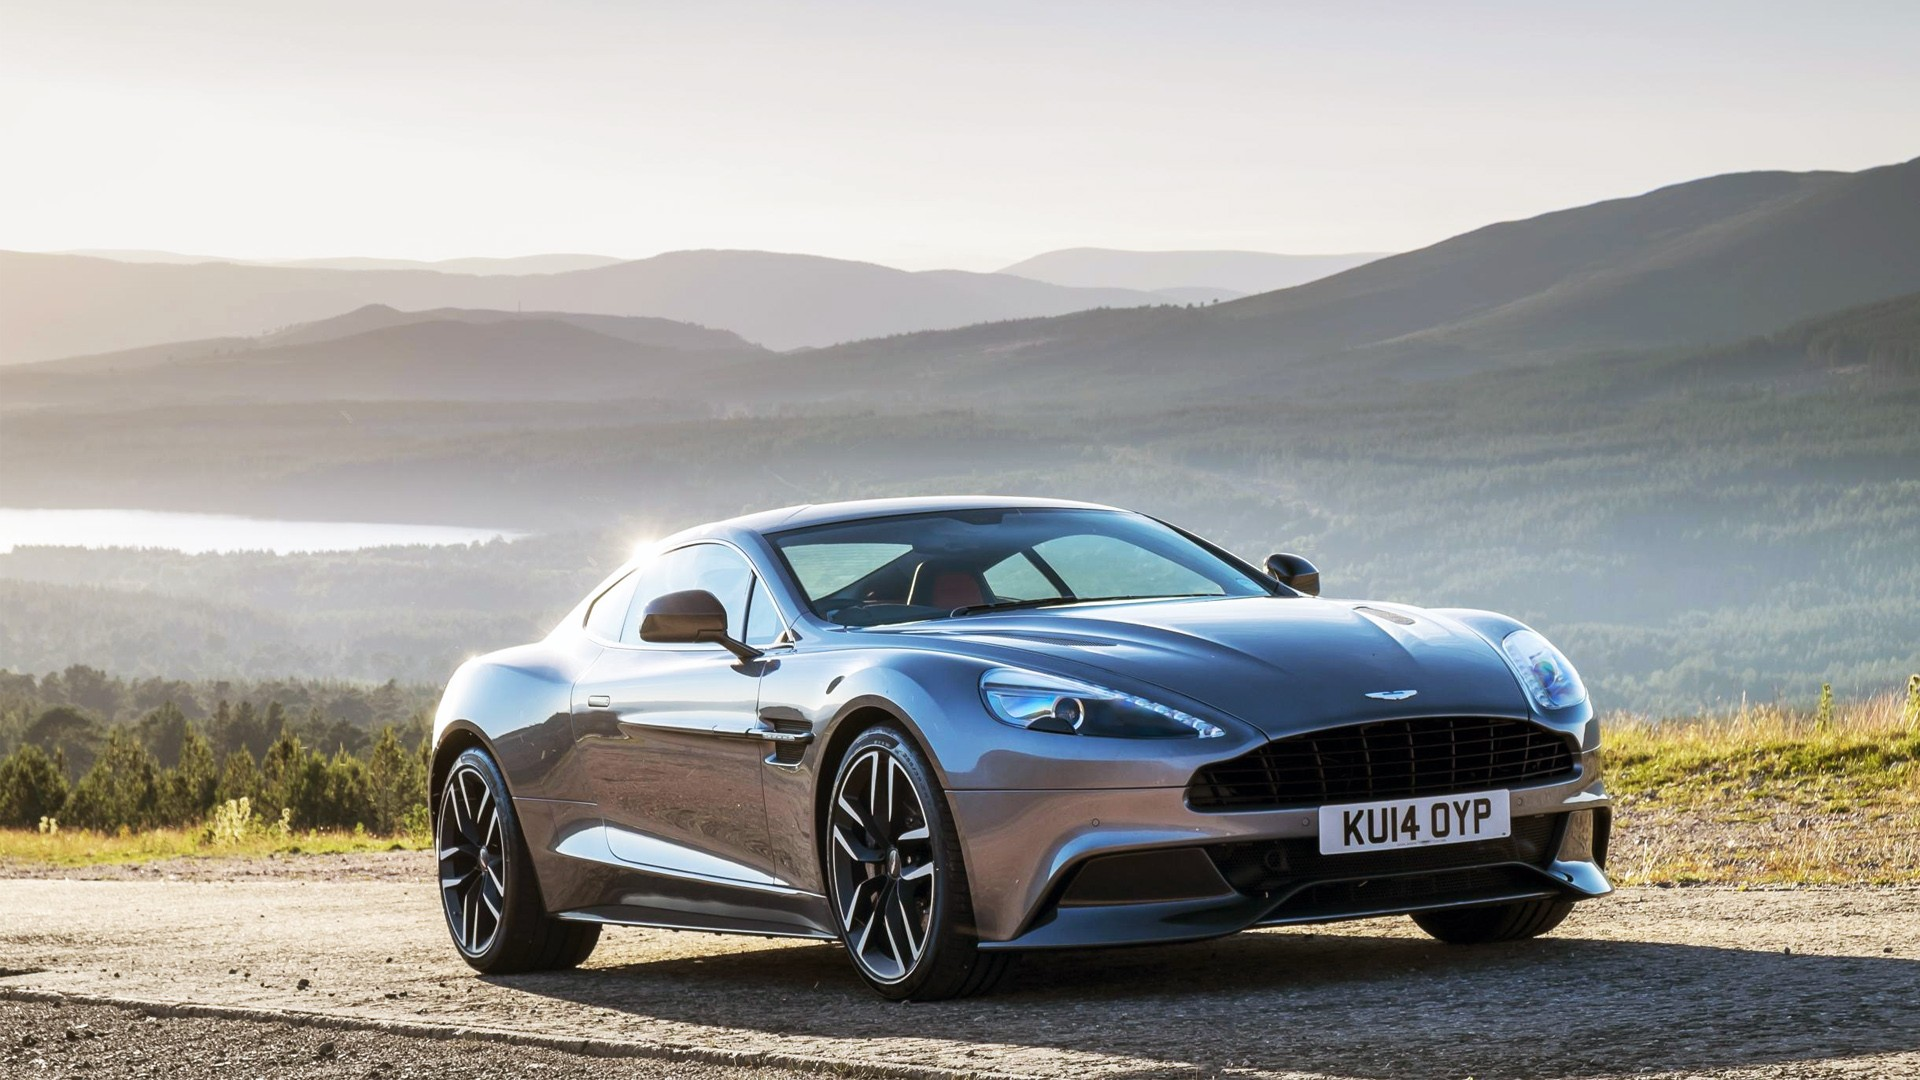 2015 aston martin vanquish wallpaper hd car wallpapers. Black Bedroom Furniture Sets. Home Design Ideas